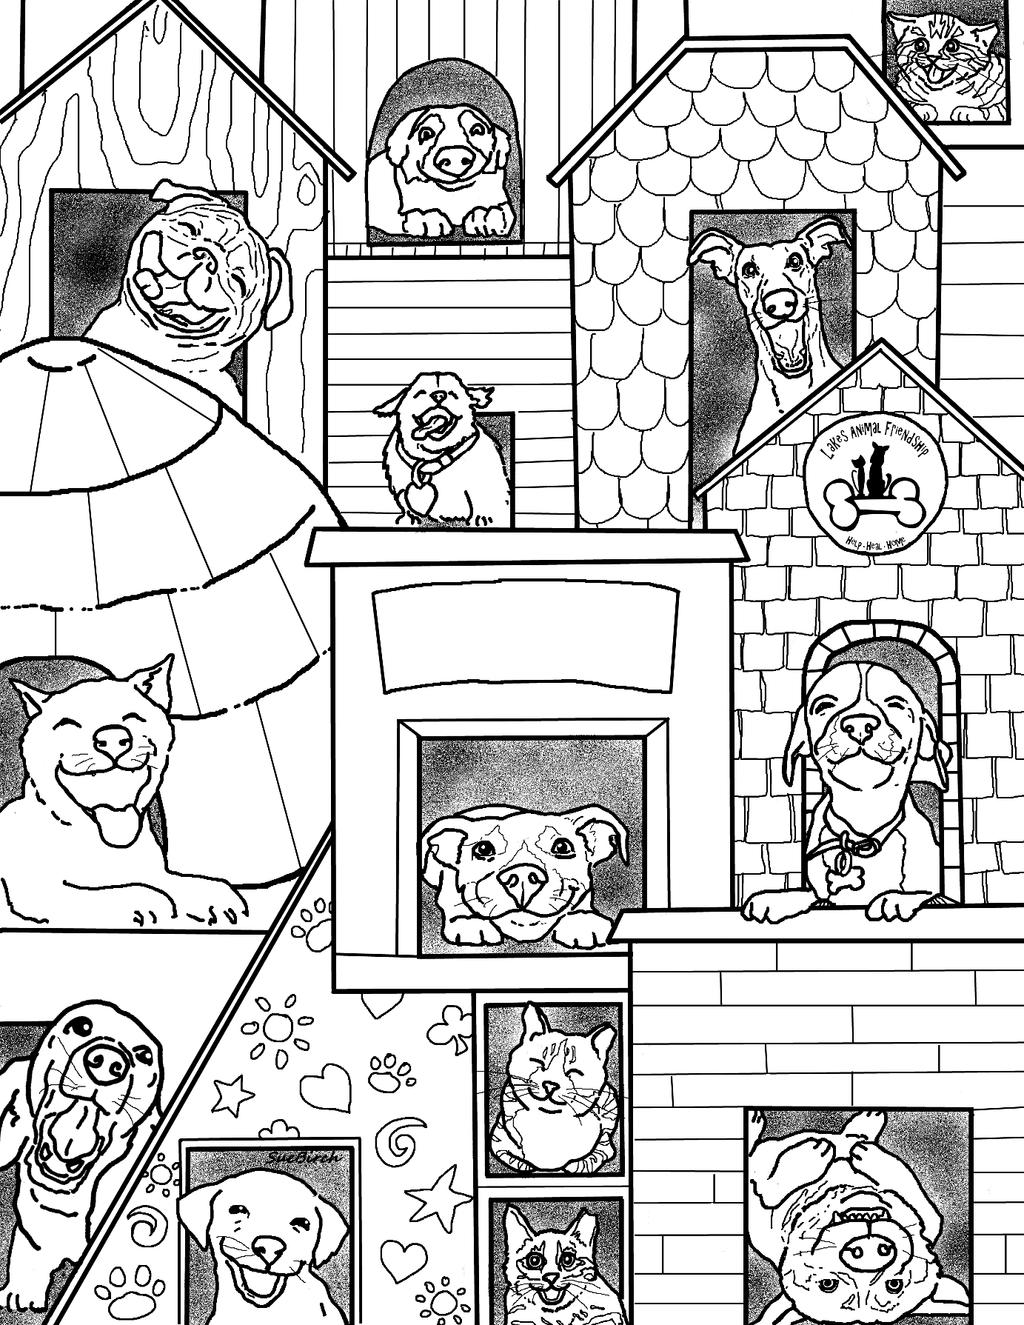 This fantastic colouring page was created by Sue Birch of Community Cat Movement: http://www.